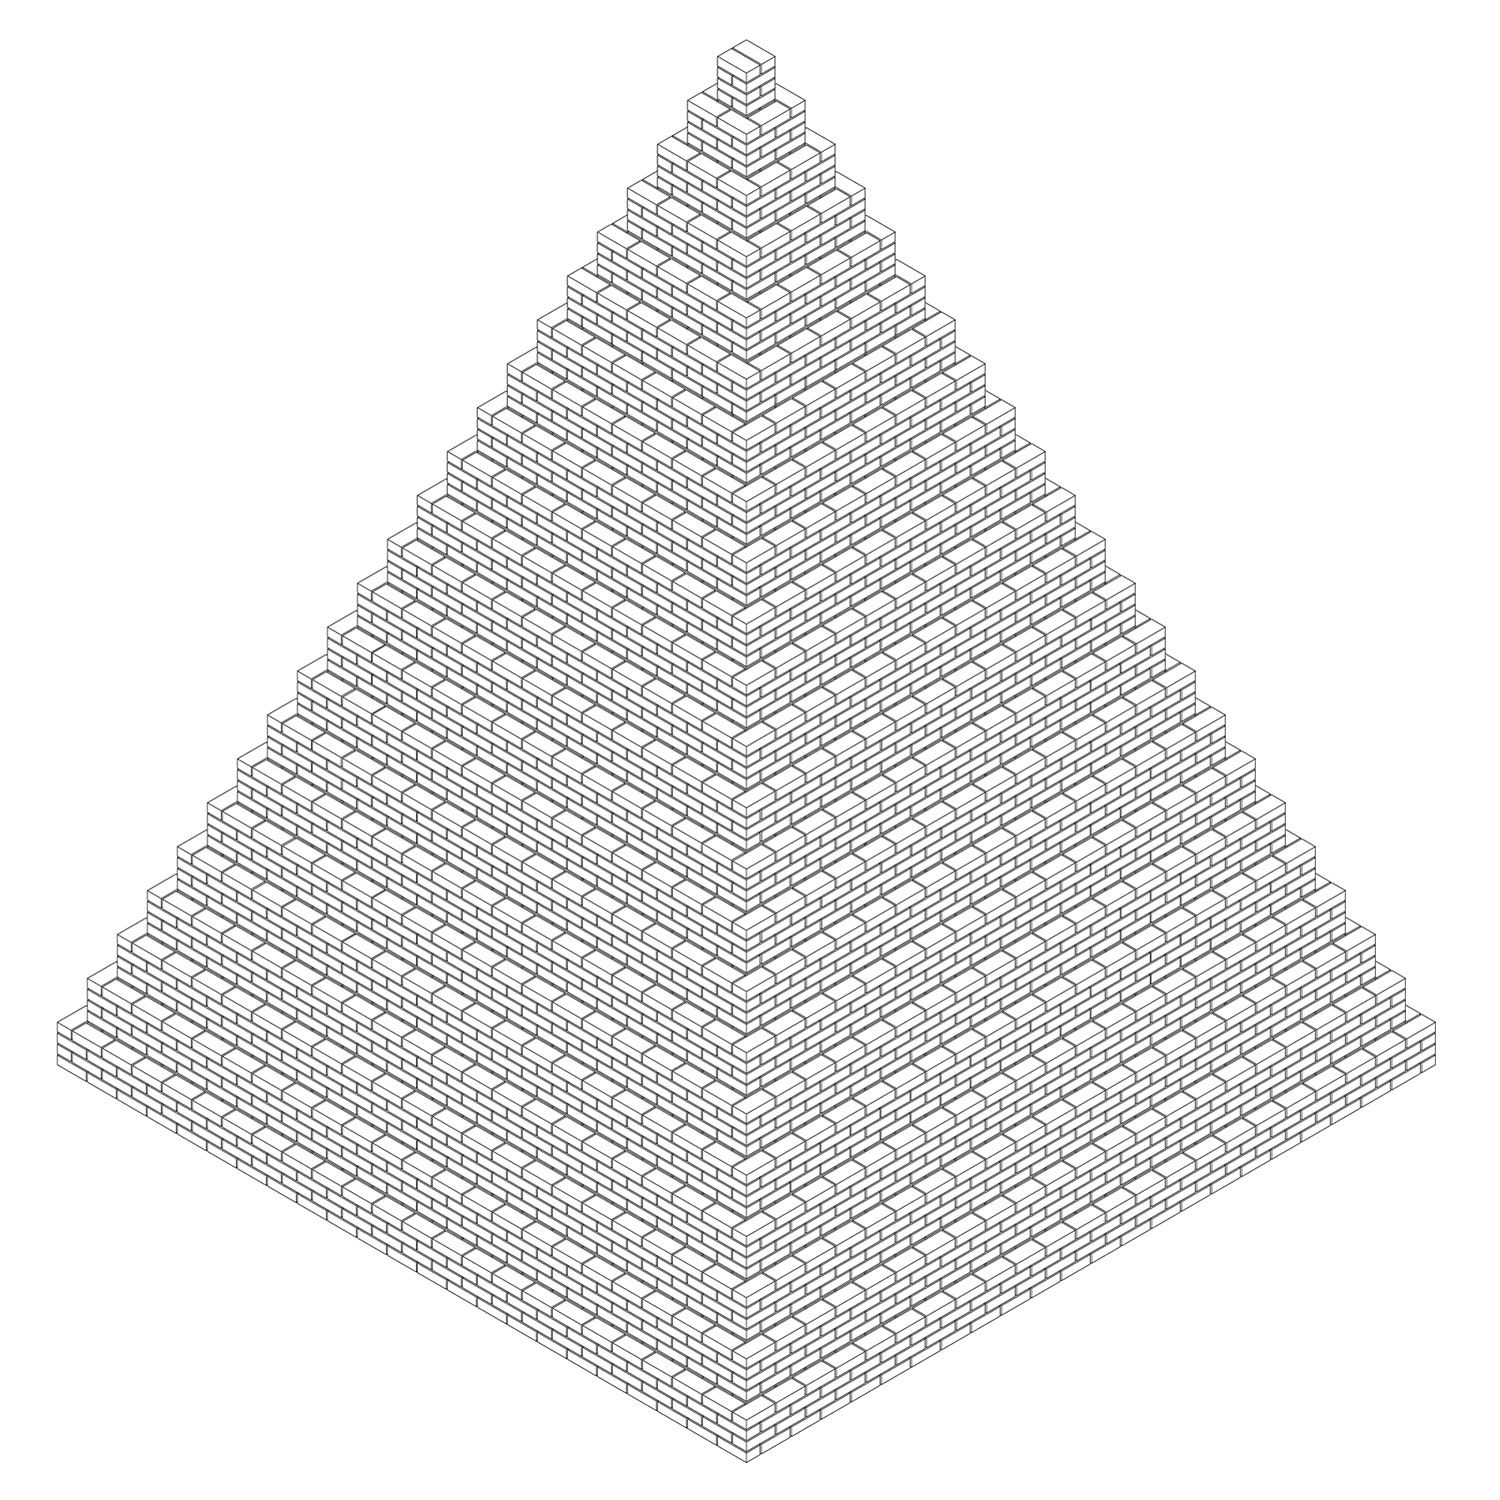 The People's Pyramid Isometric drawing